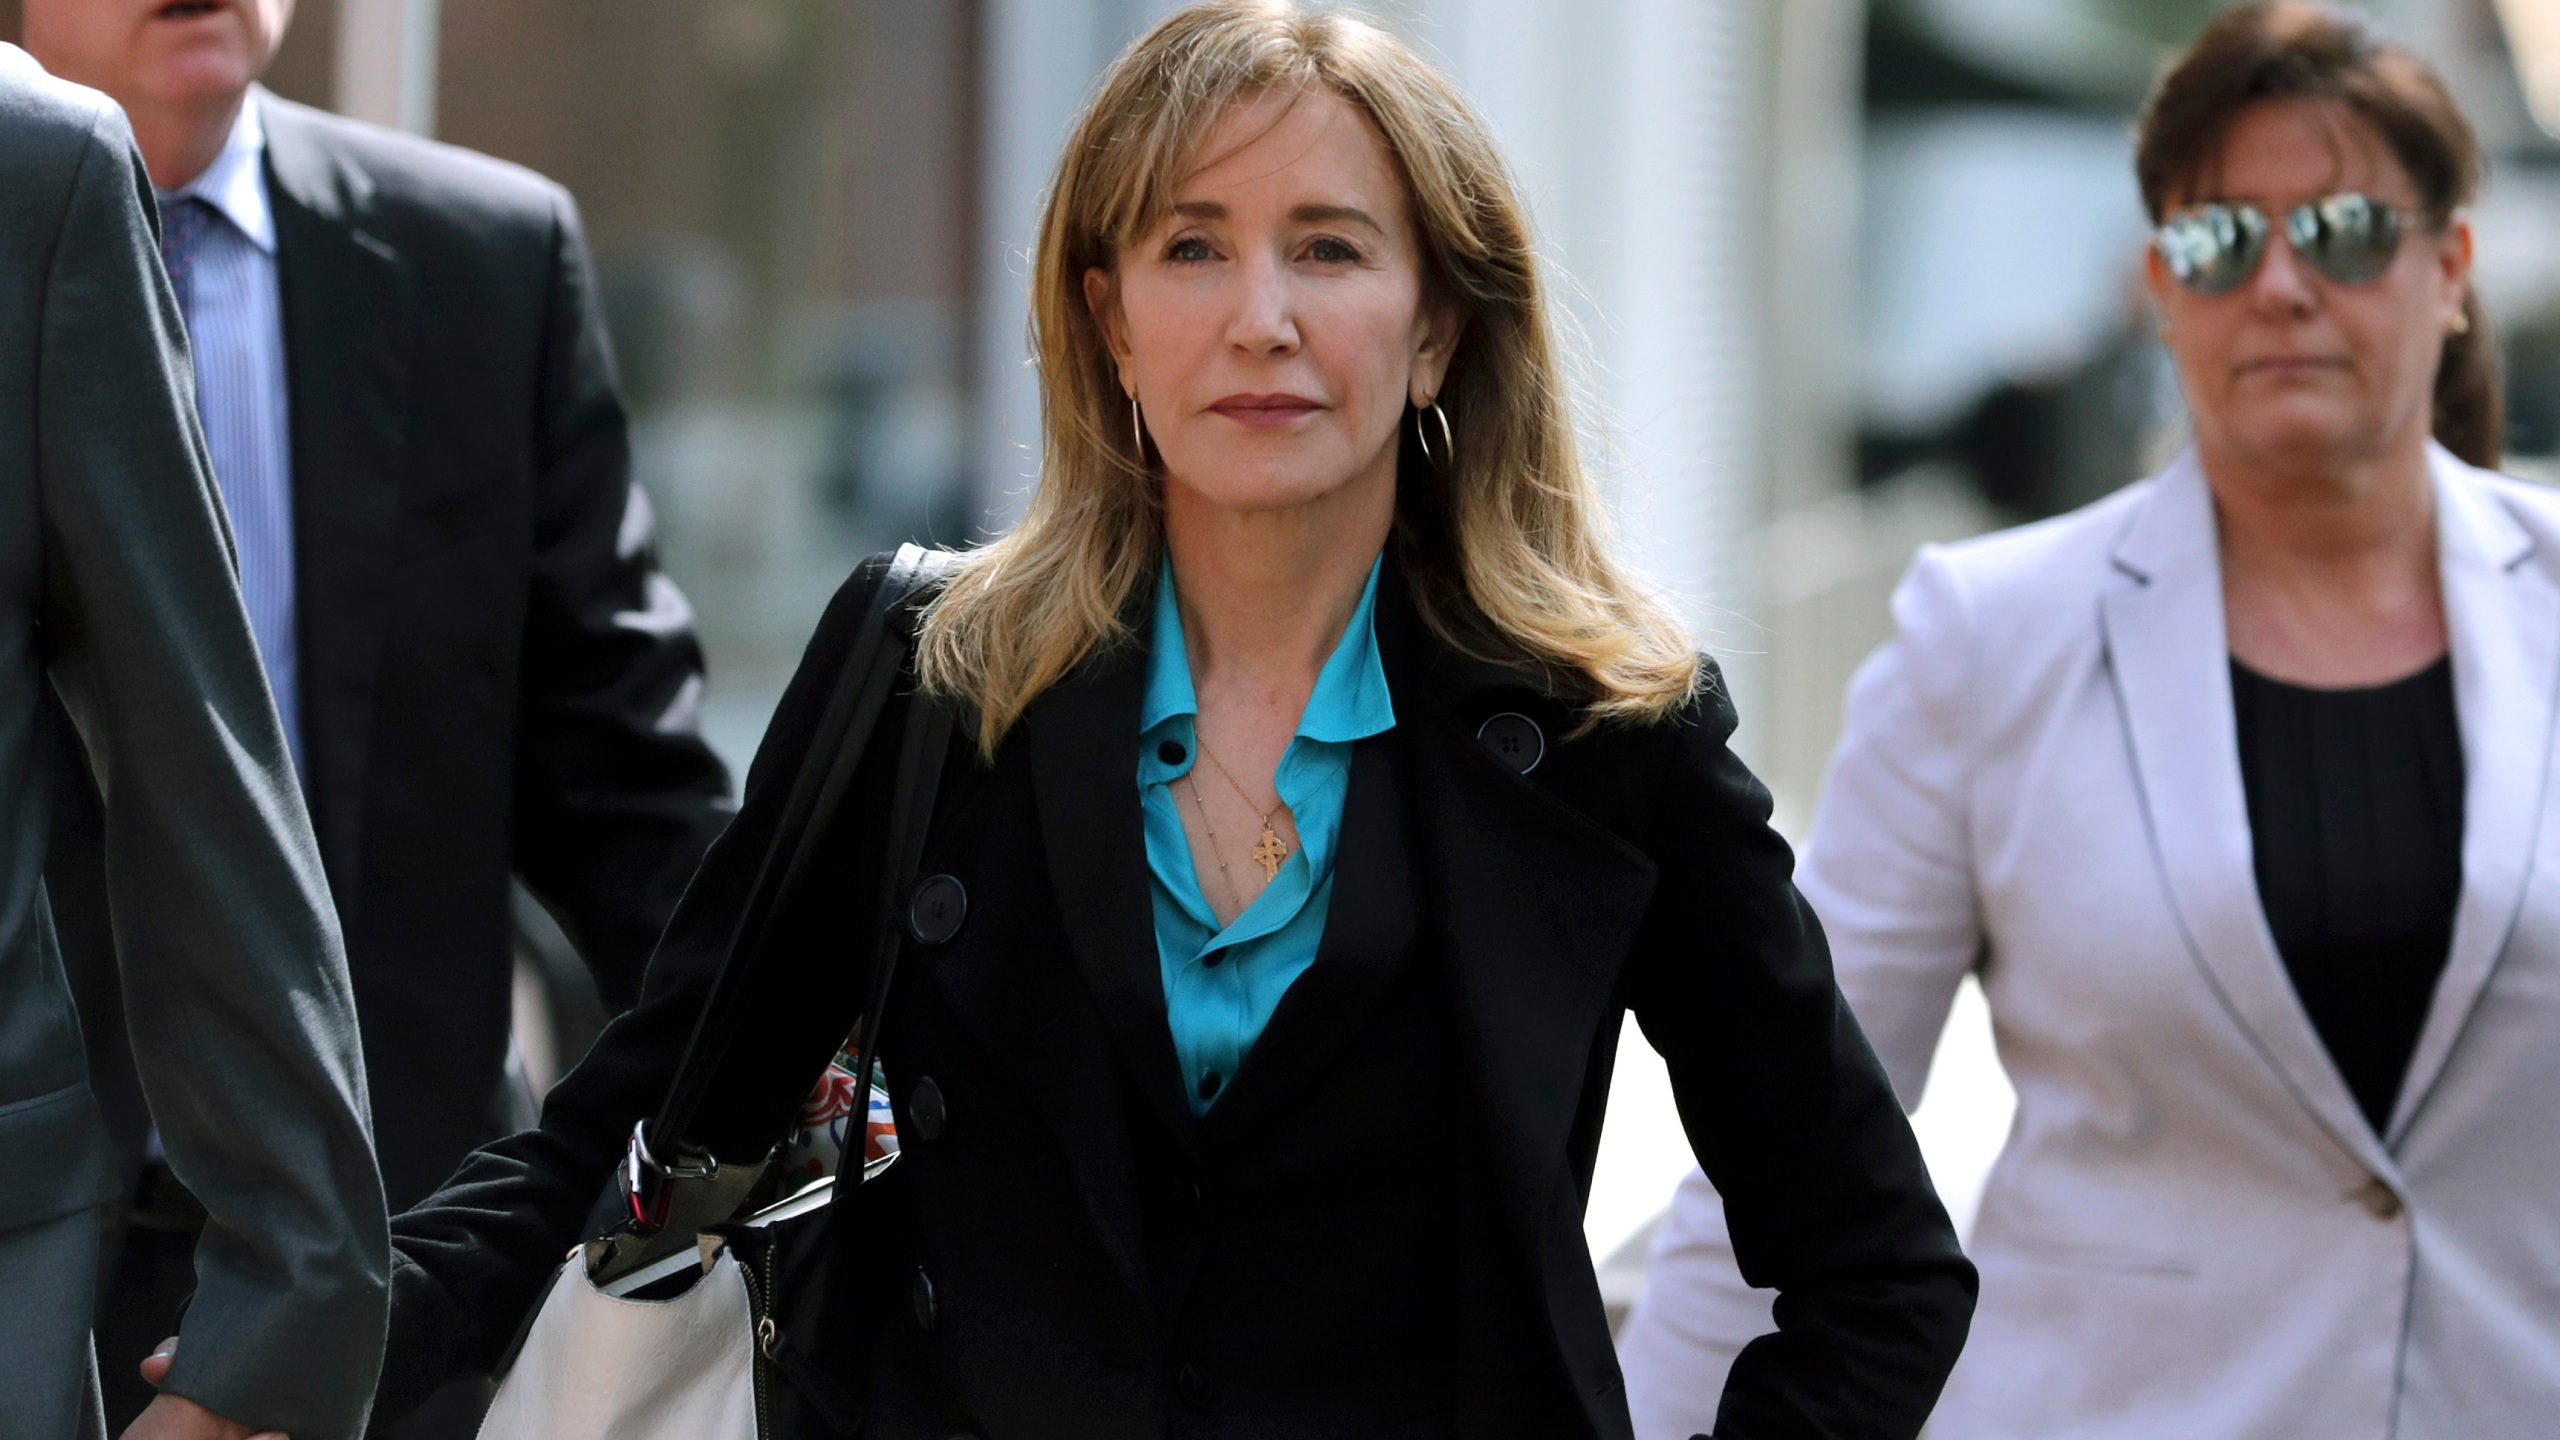 College_Admissions-Bribery_-_Felicity_Huffman_96961-159532.jpg79321062